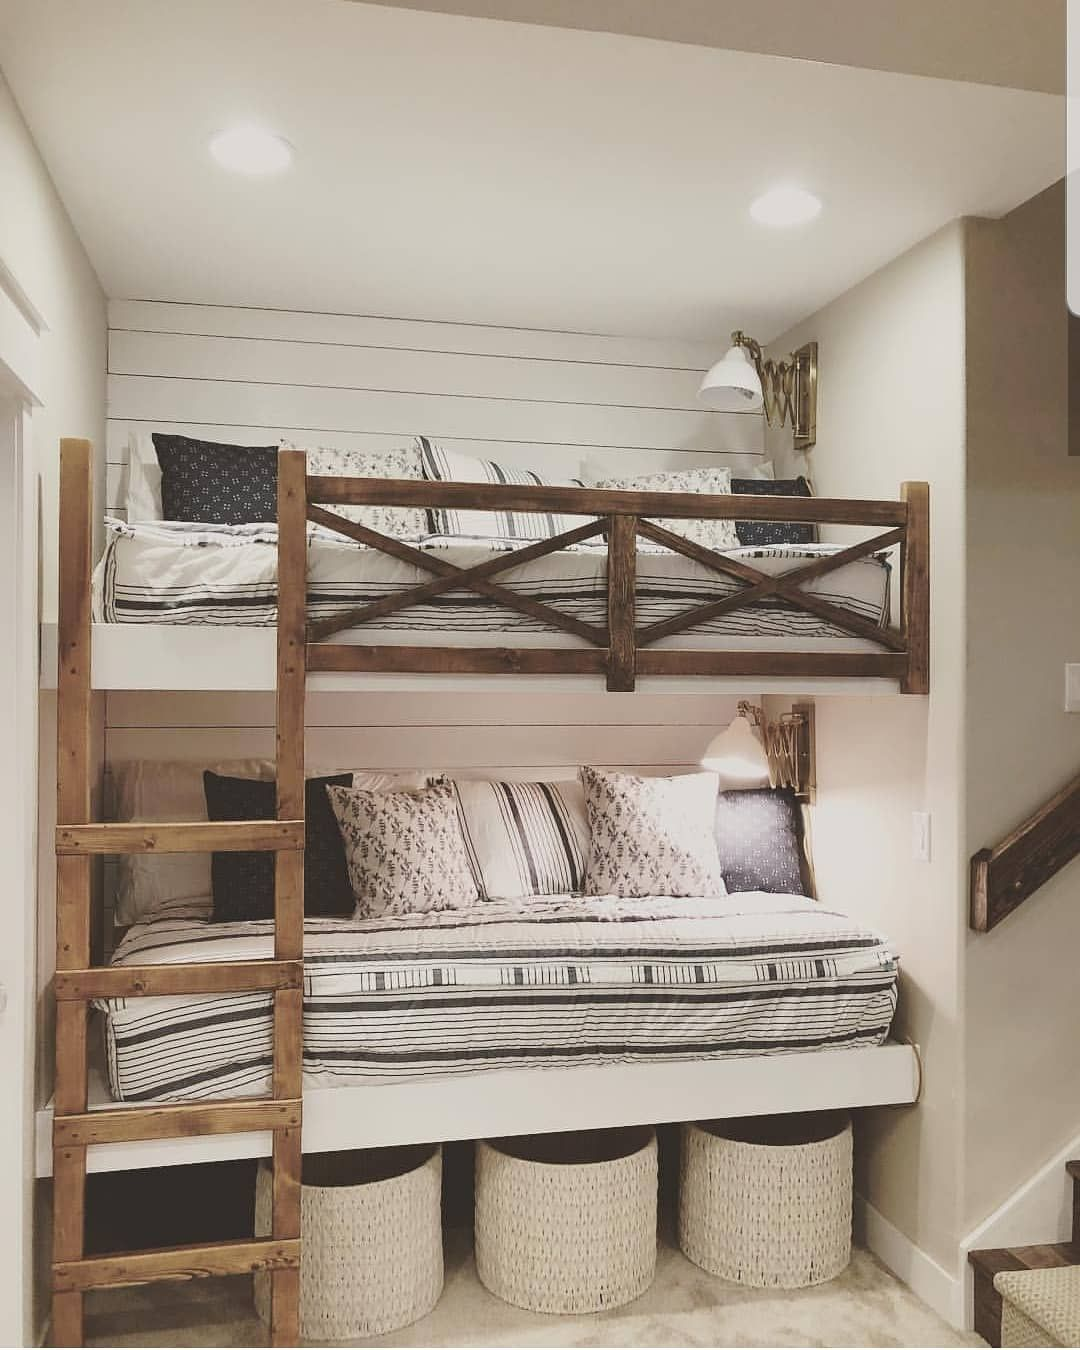 """Farmhouse Stylebook on Instagram: """"I don't necessarily need bunk beds but now I definitely want some. This is perfect.  Photo belongs to: @birdie_home_"""""""